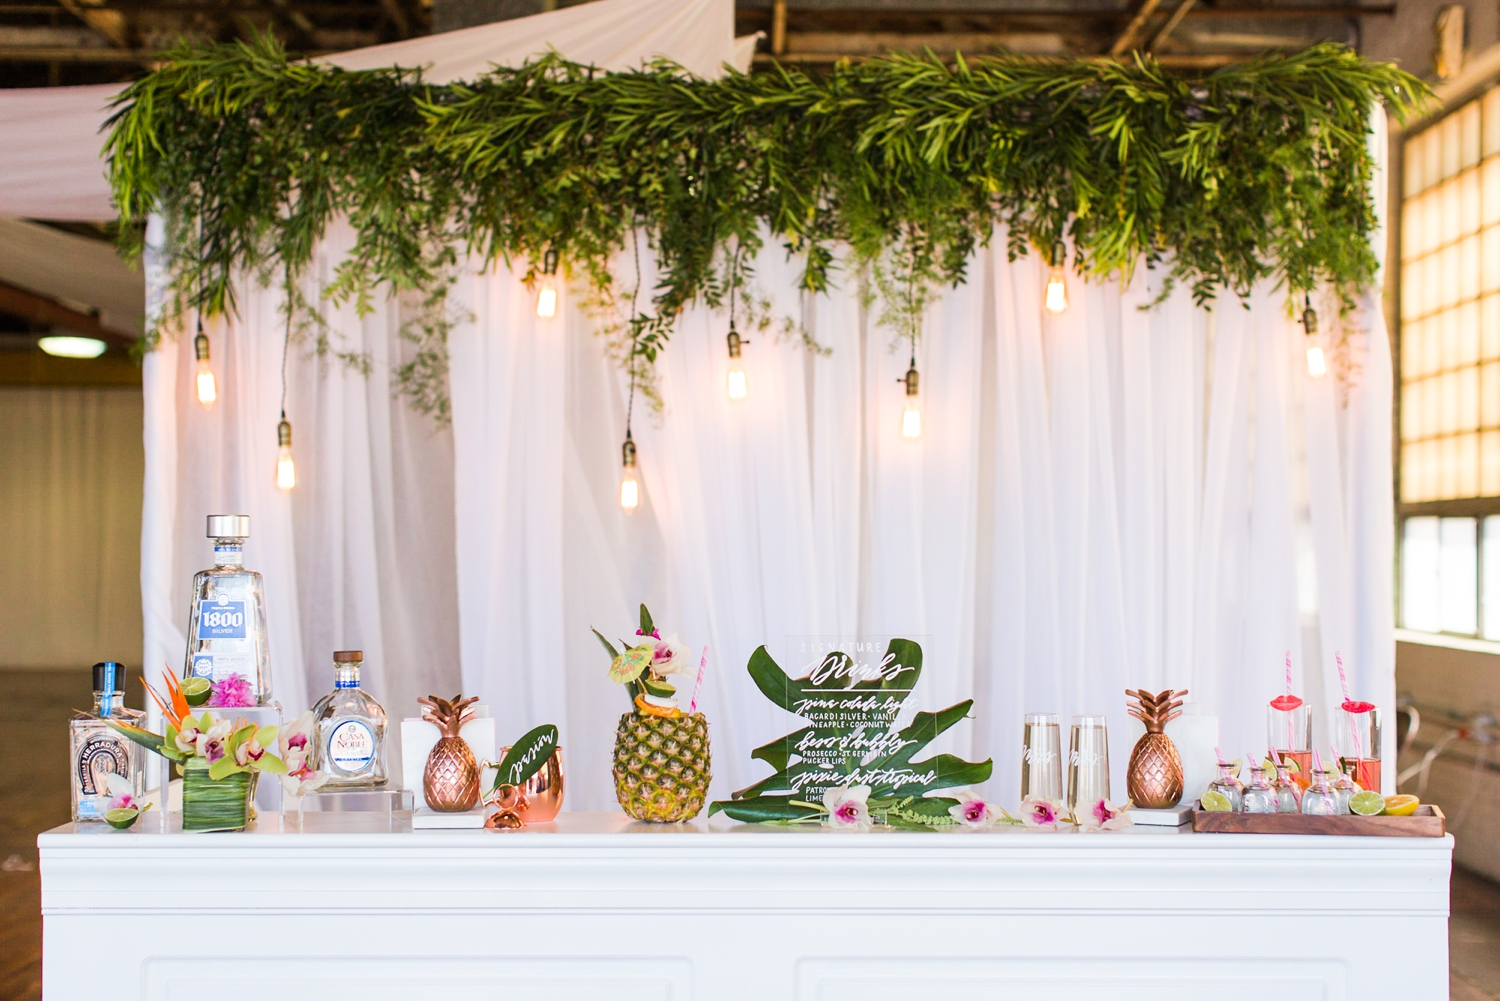 tropical-warehouse-wedding-boathouse-305-knowlton-bridgeport-connecticut-new-york-hawaii-photographer-shaina-lee-photography-photo